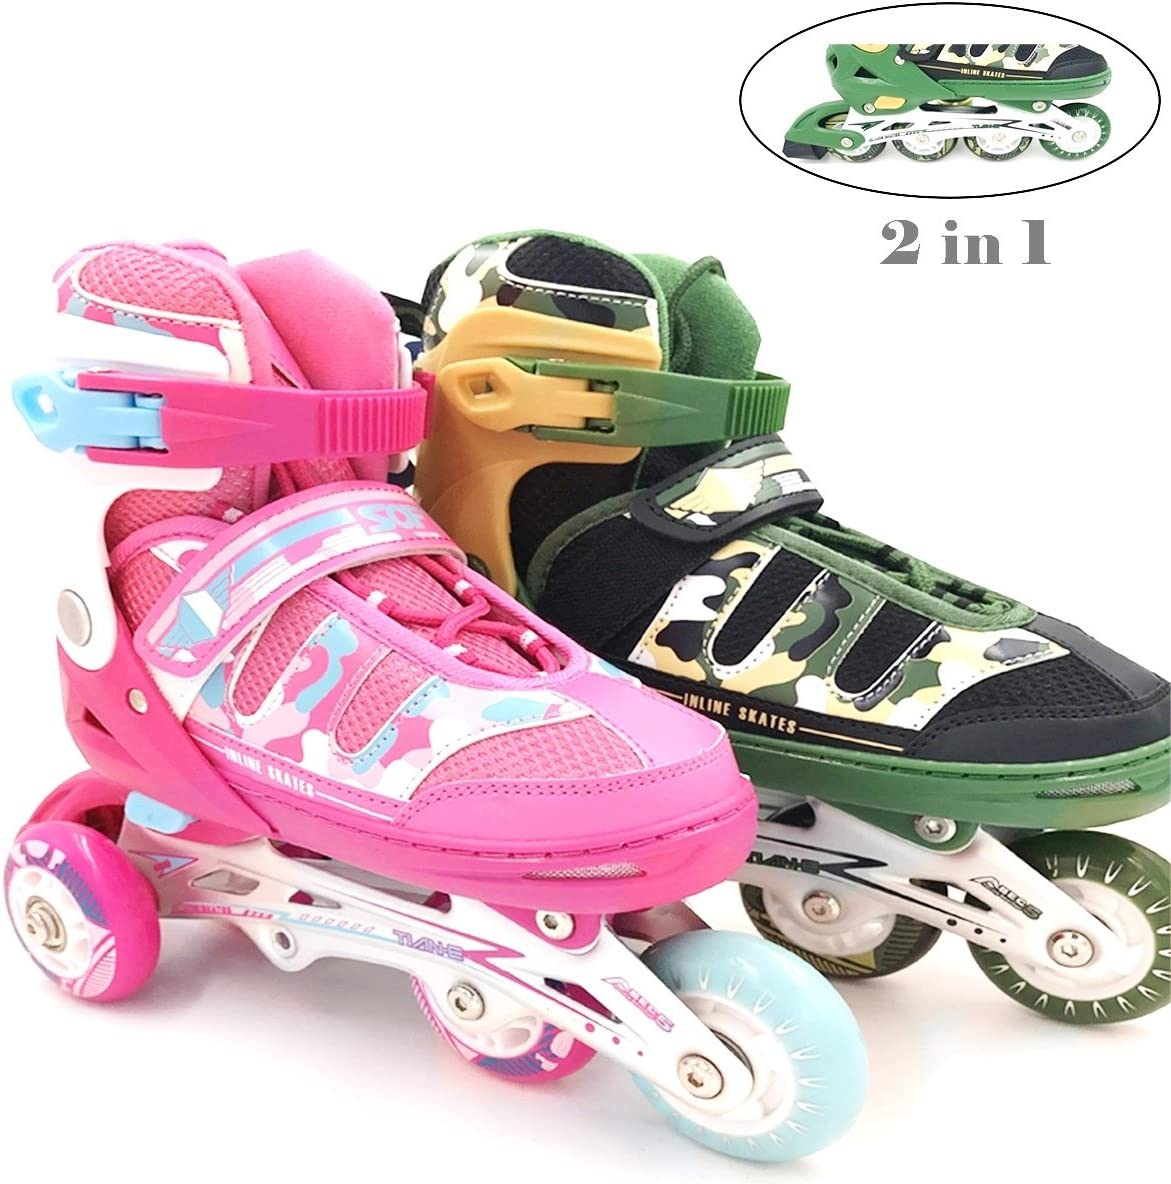 Mpoutik Boys Girls Adjustable Inline Skates Roller Skates 2 in 1 Convertible Speed Roller Skates Shoes for Children Kids Teens